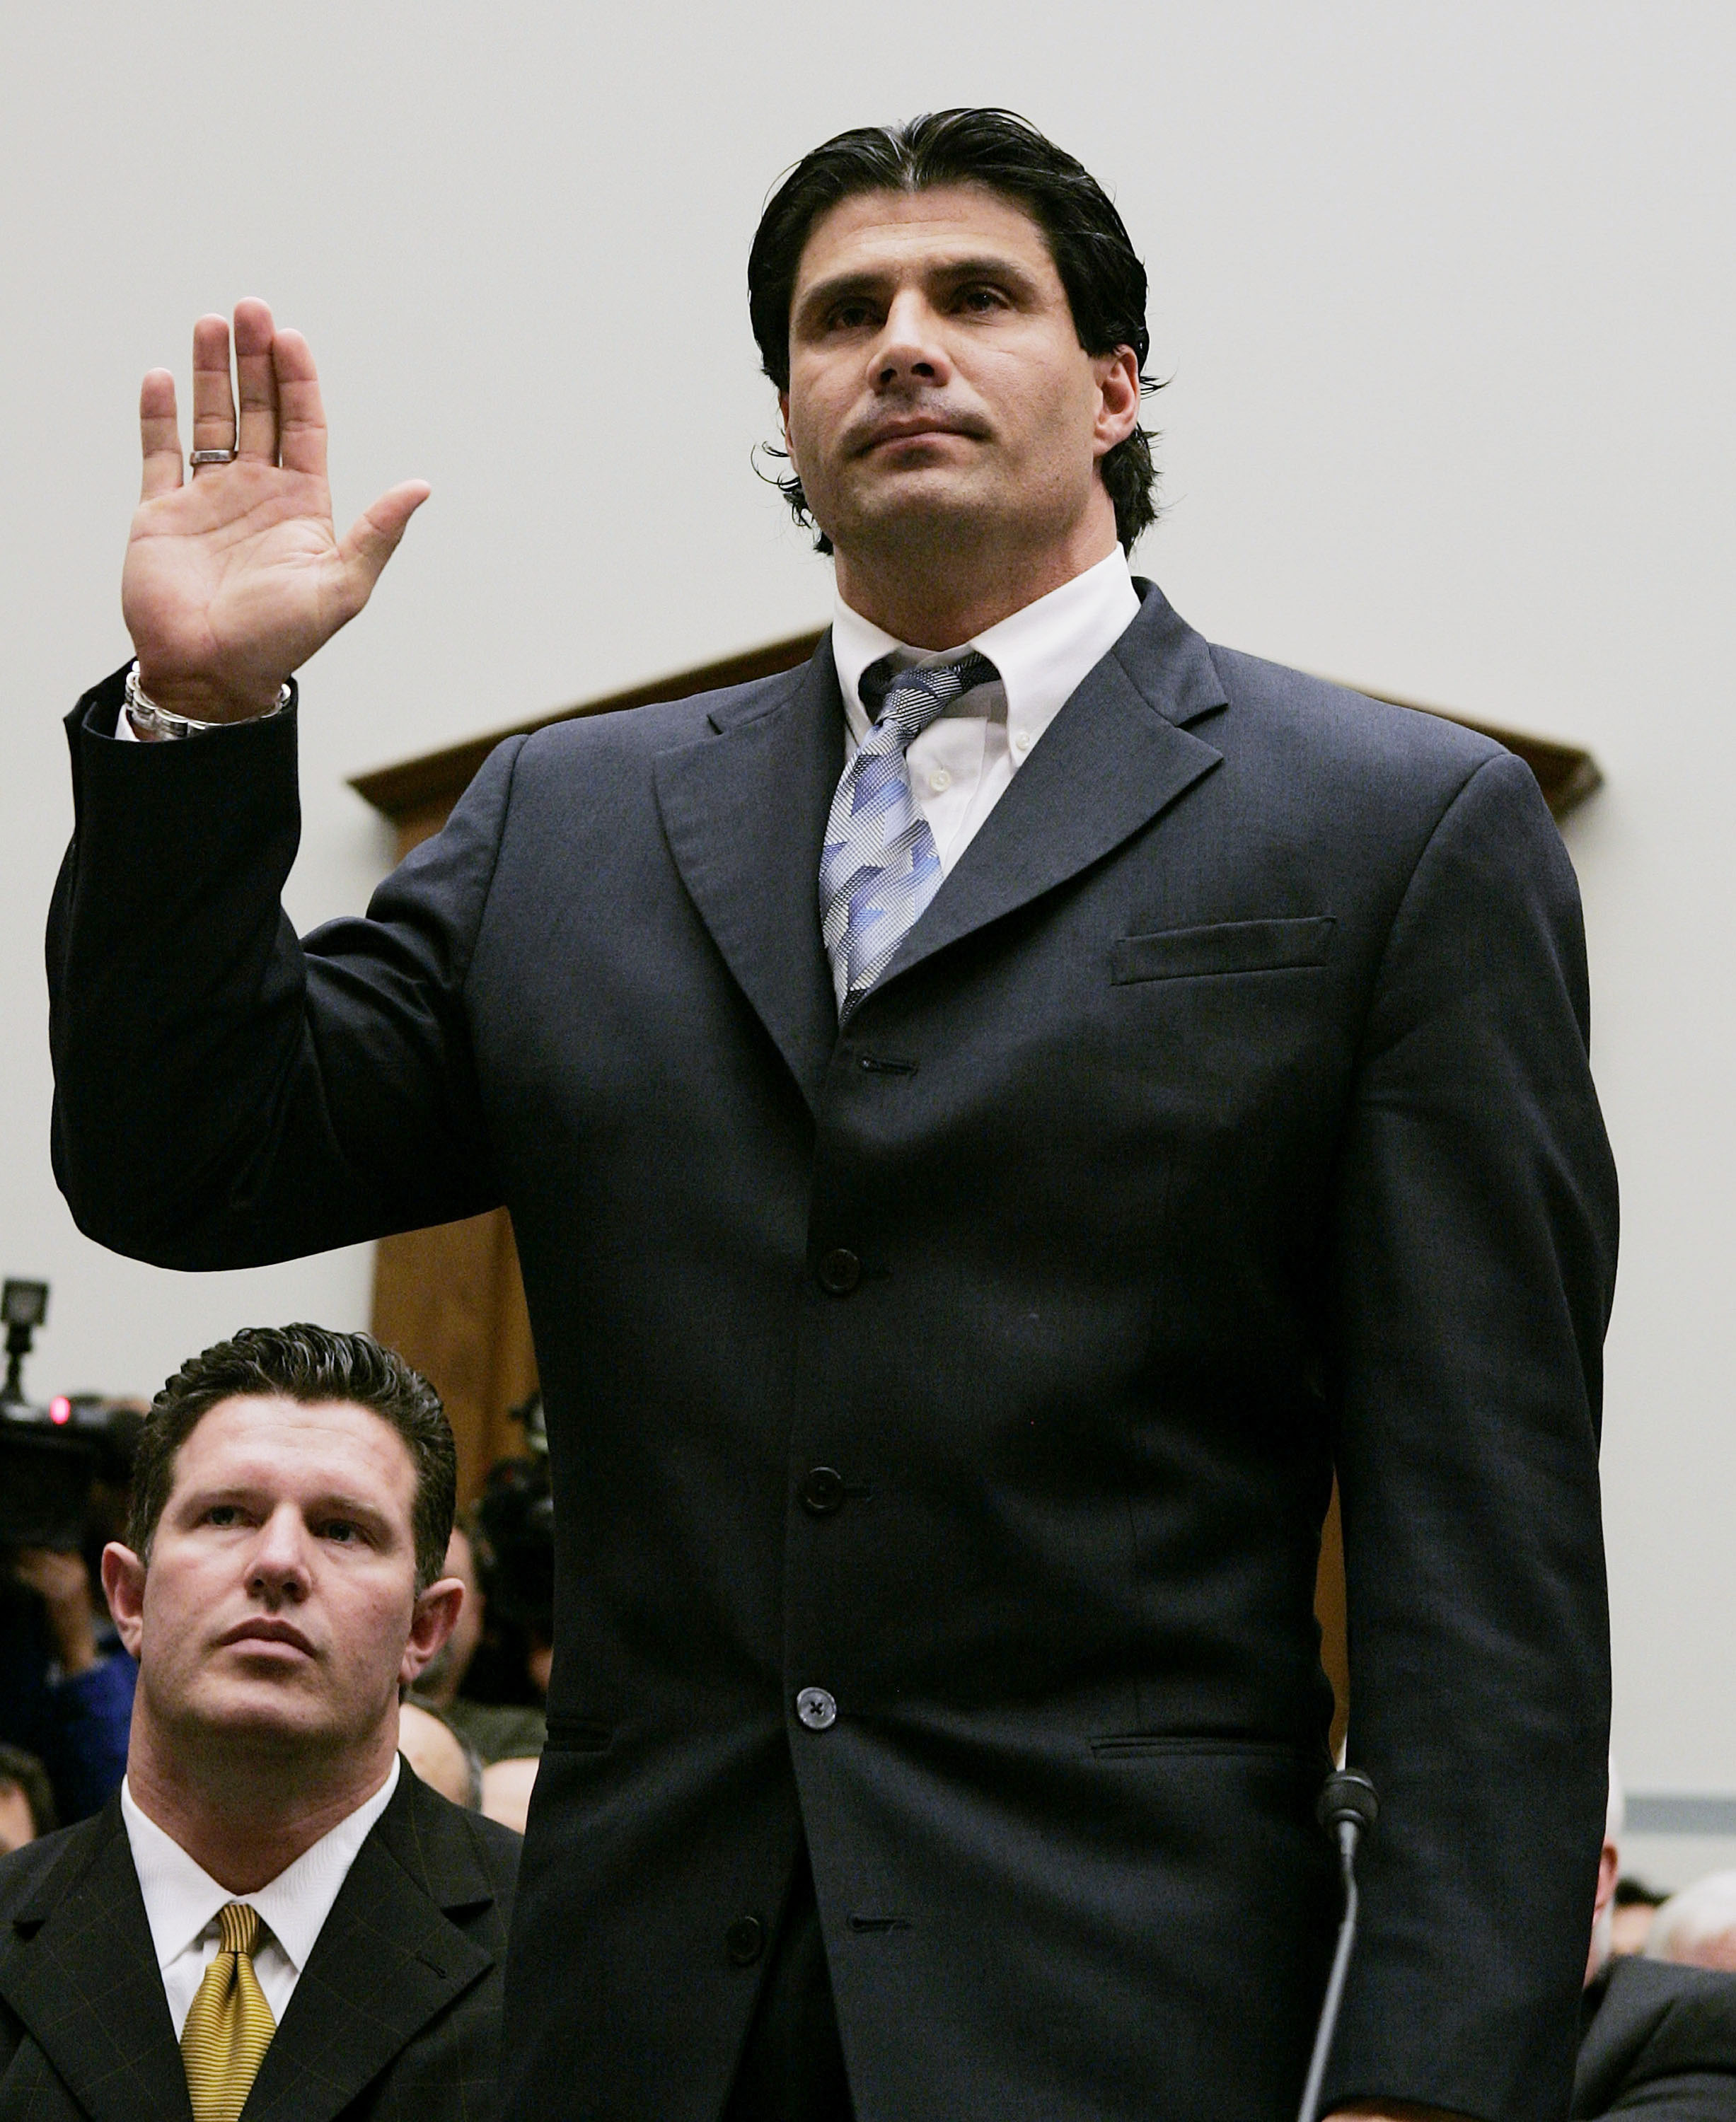 WASHINGTON - MARCH 17:  Former Major League Baseball player Jose Canseco is sworn in during a House Committe session investigating Major League Baseball's effort to eradicate steroid use on Capital Hill March 17, 2005 in Washington, DC. Major League Baseb